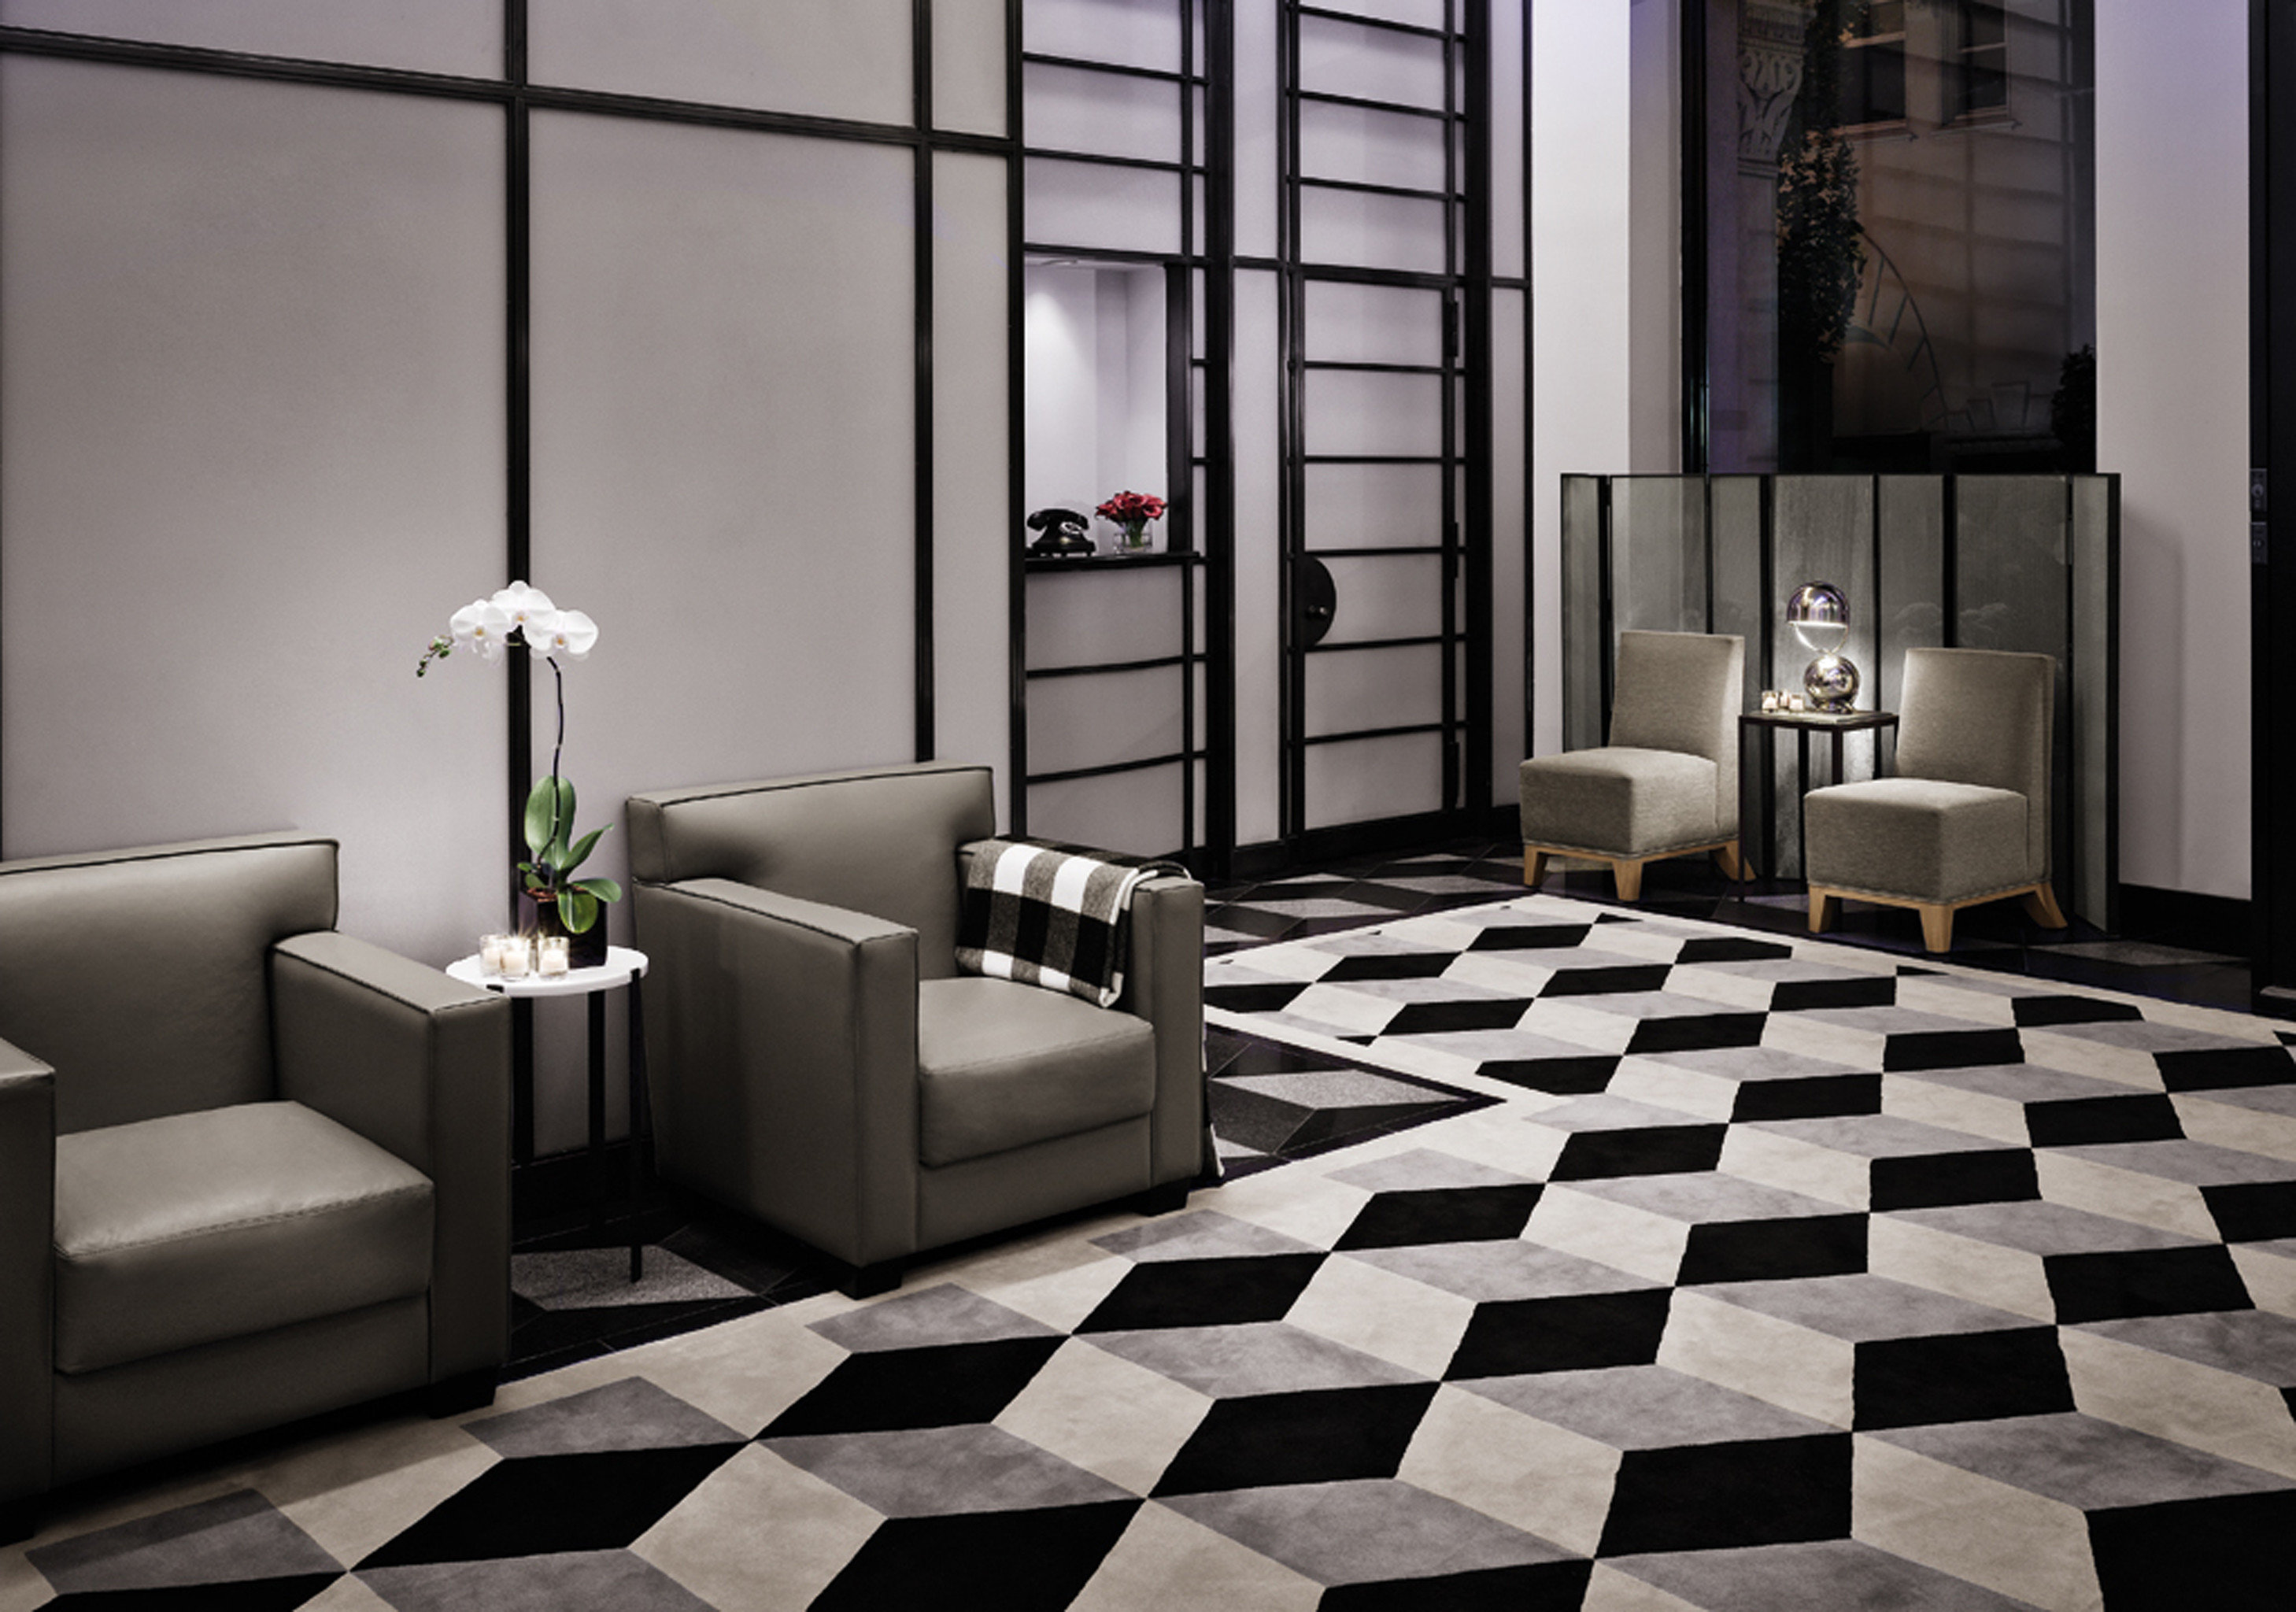 Business City Lobby Modern black flooring white tile living room tiled